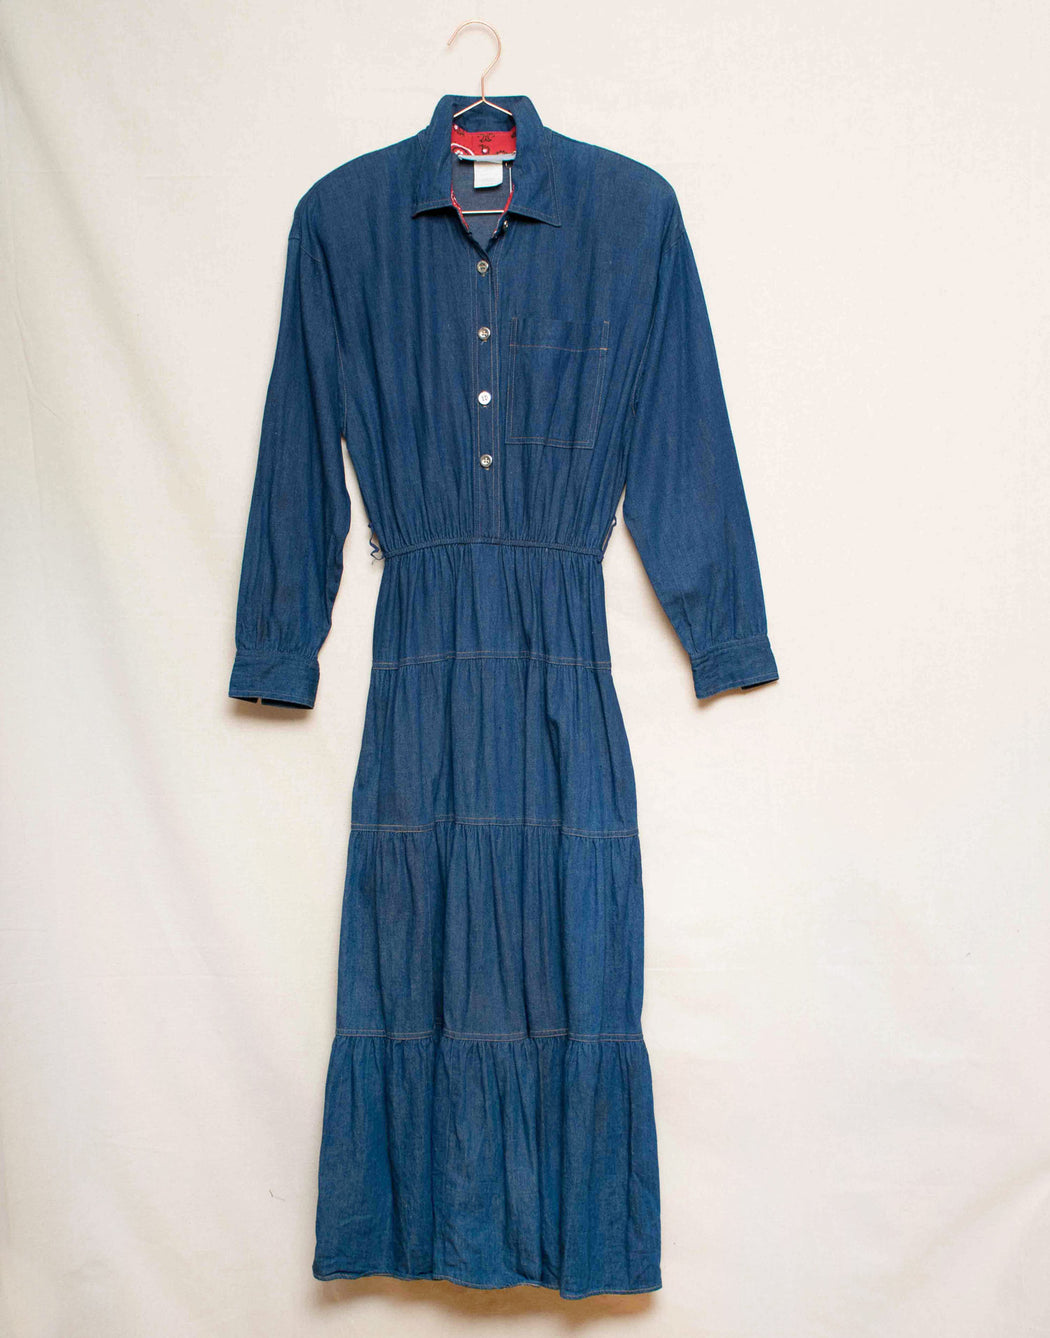 Carol Anderson Denim Dress